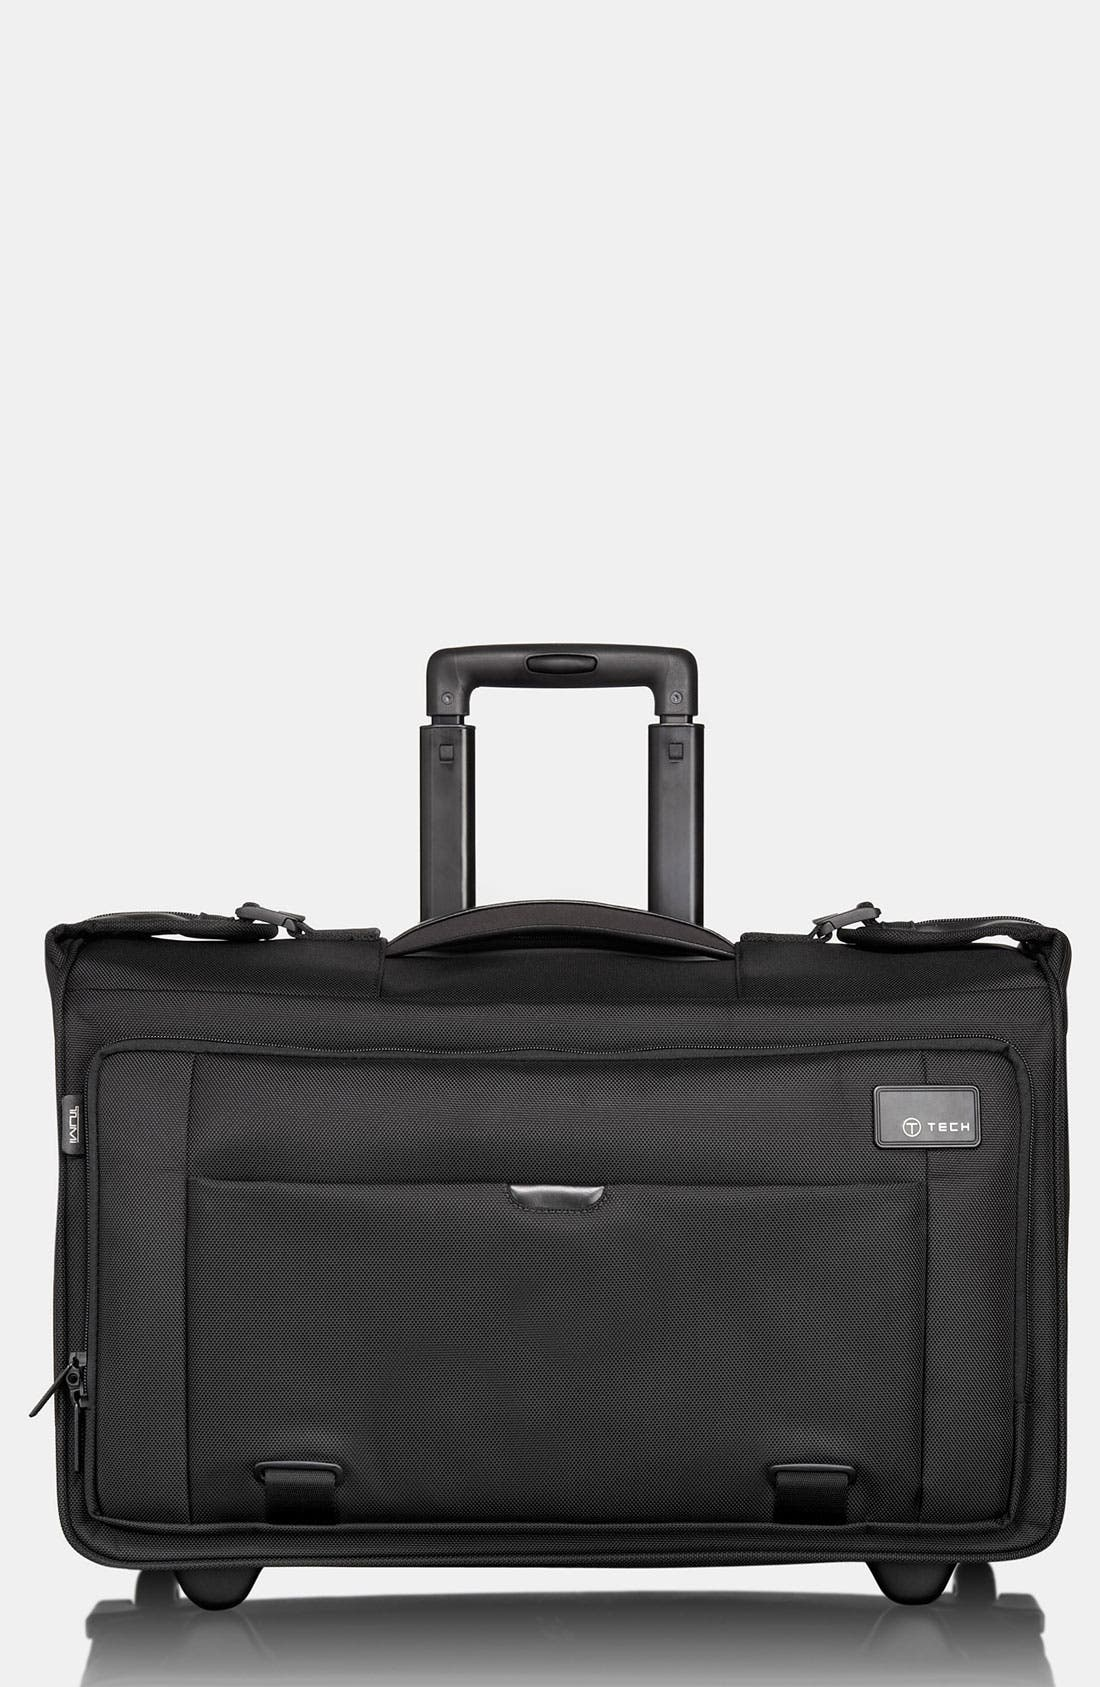 Main Image - Tumi 'T-Tech Network' Wheeled Carry-On Garment Bag (22 Inch)